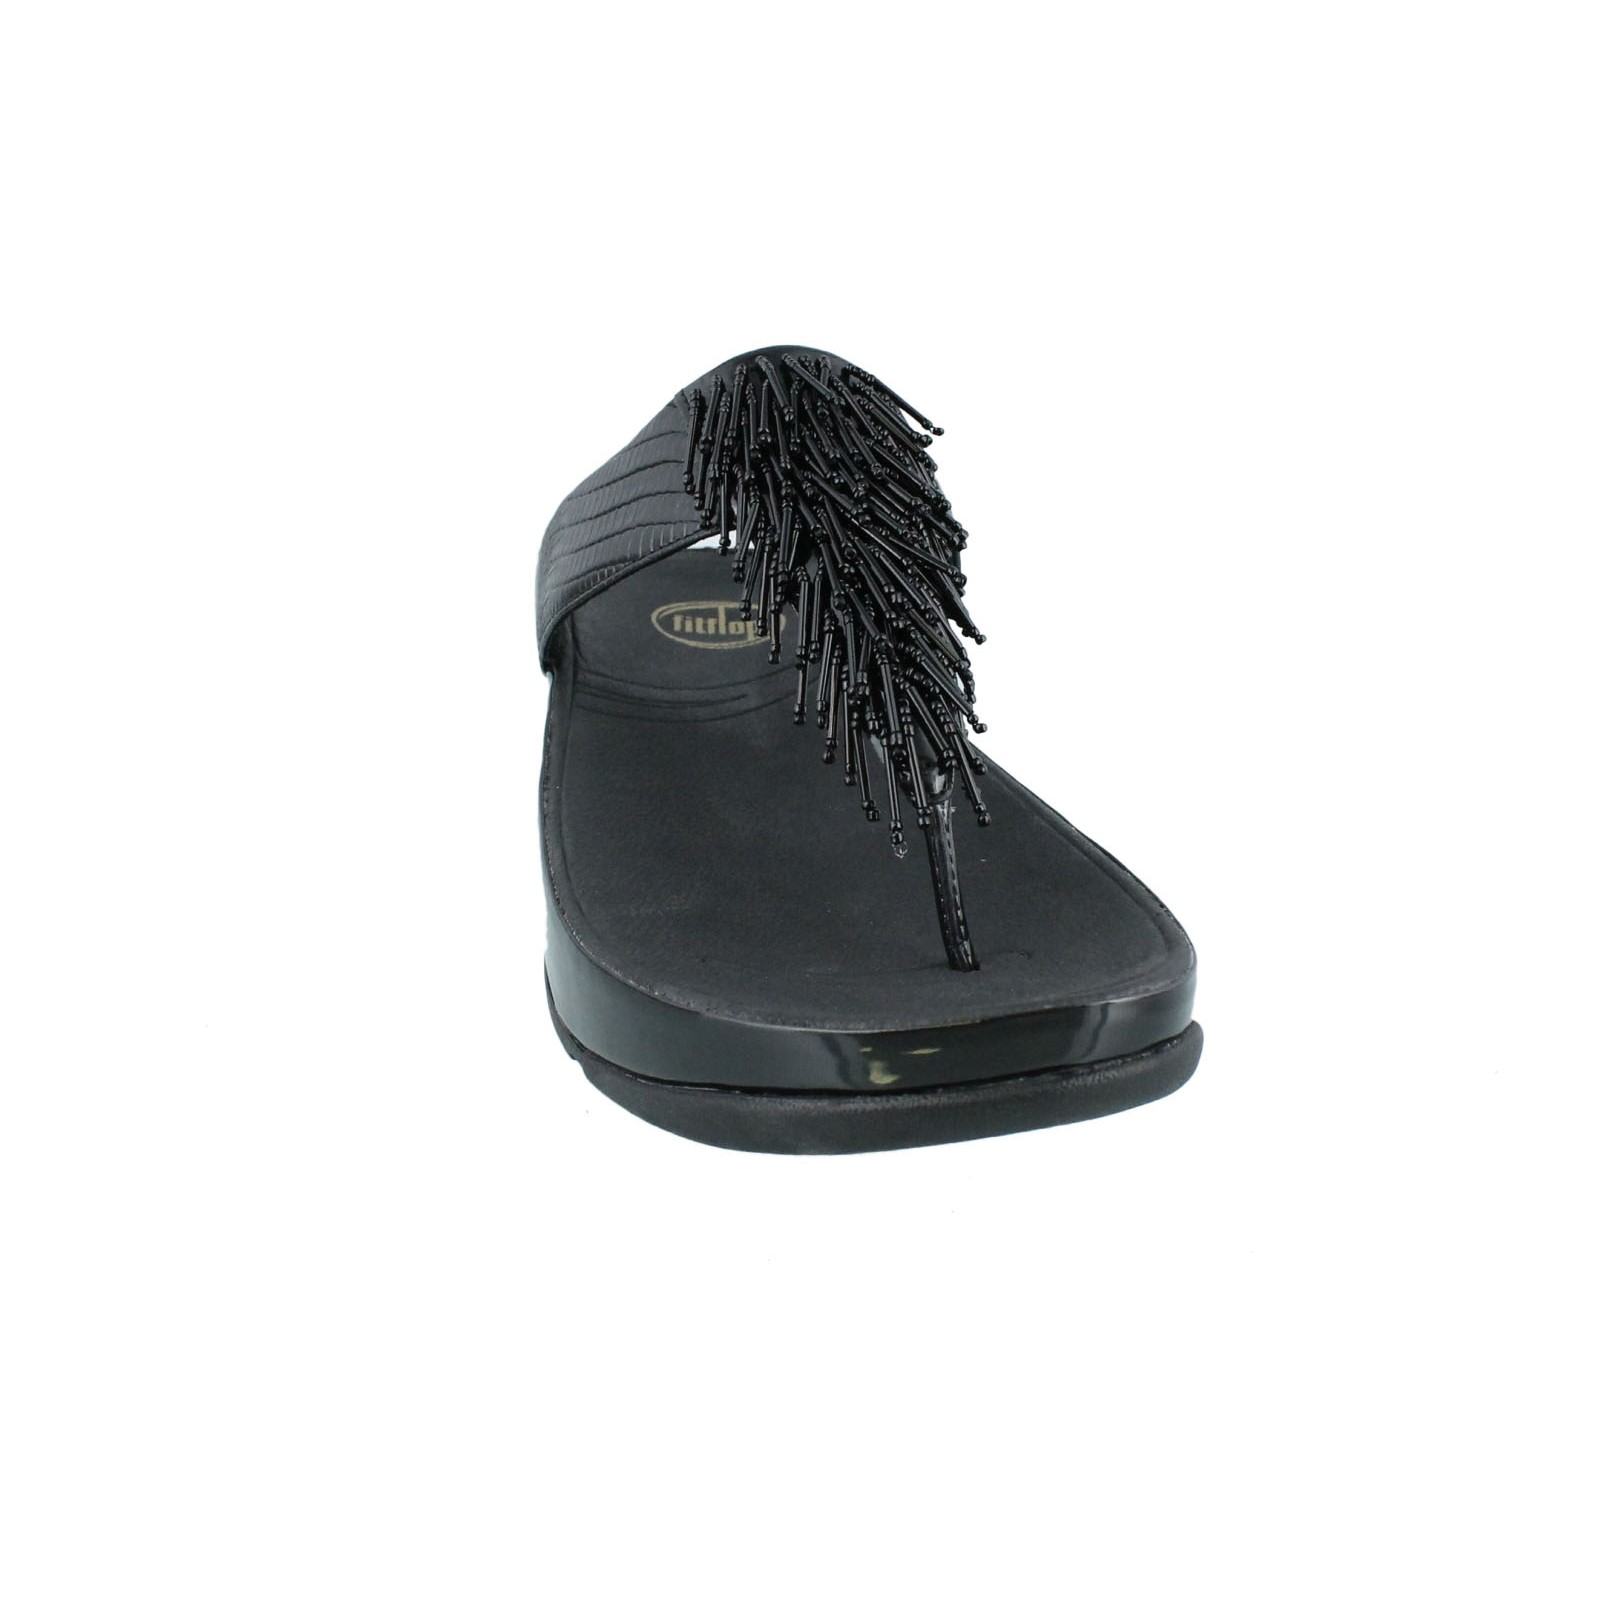 501b359b0995a Next. add to favorites. Women s FitFlop